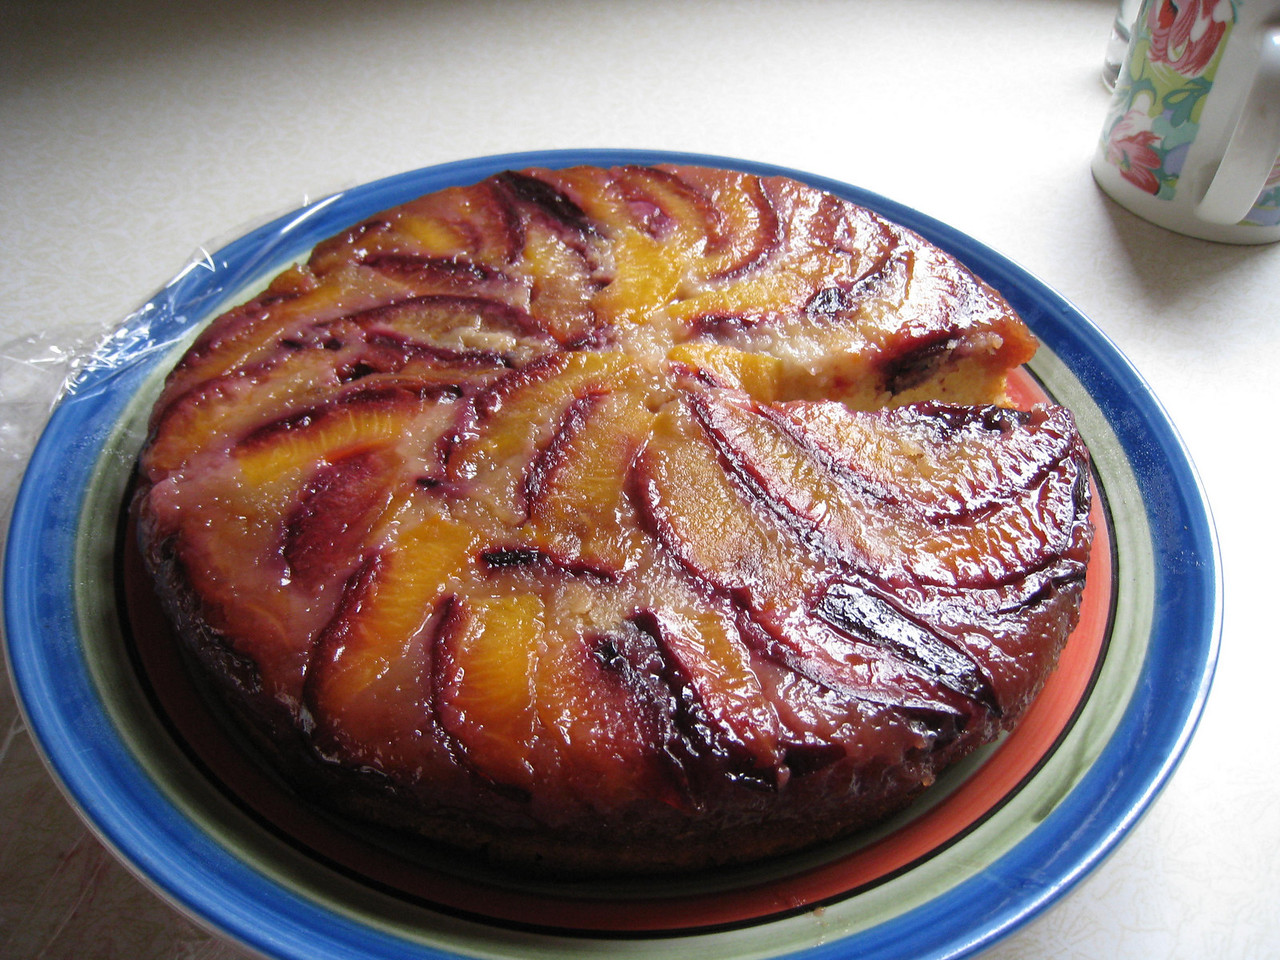 After stealing the plums she made this Plum Cake